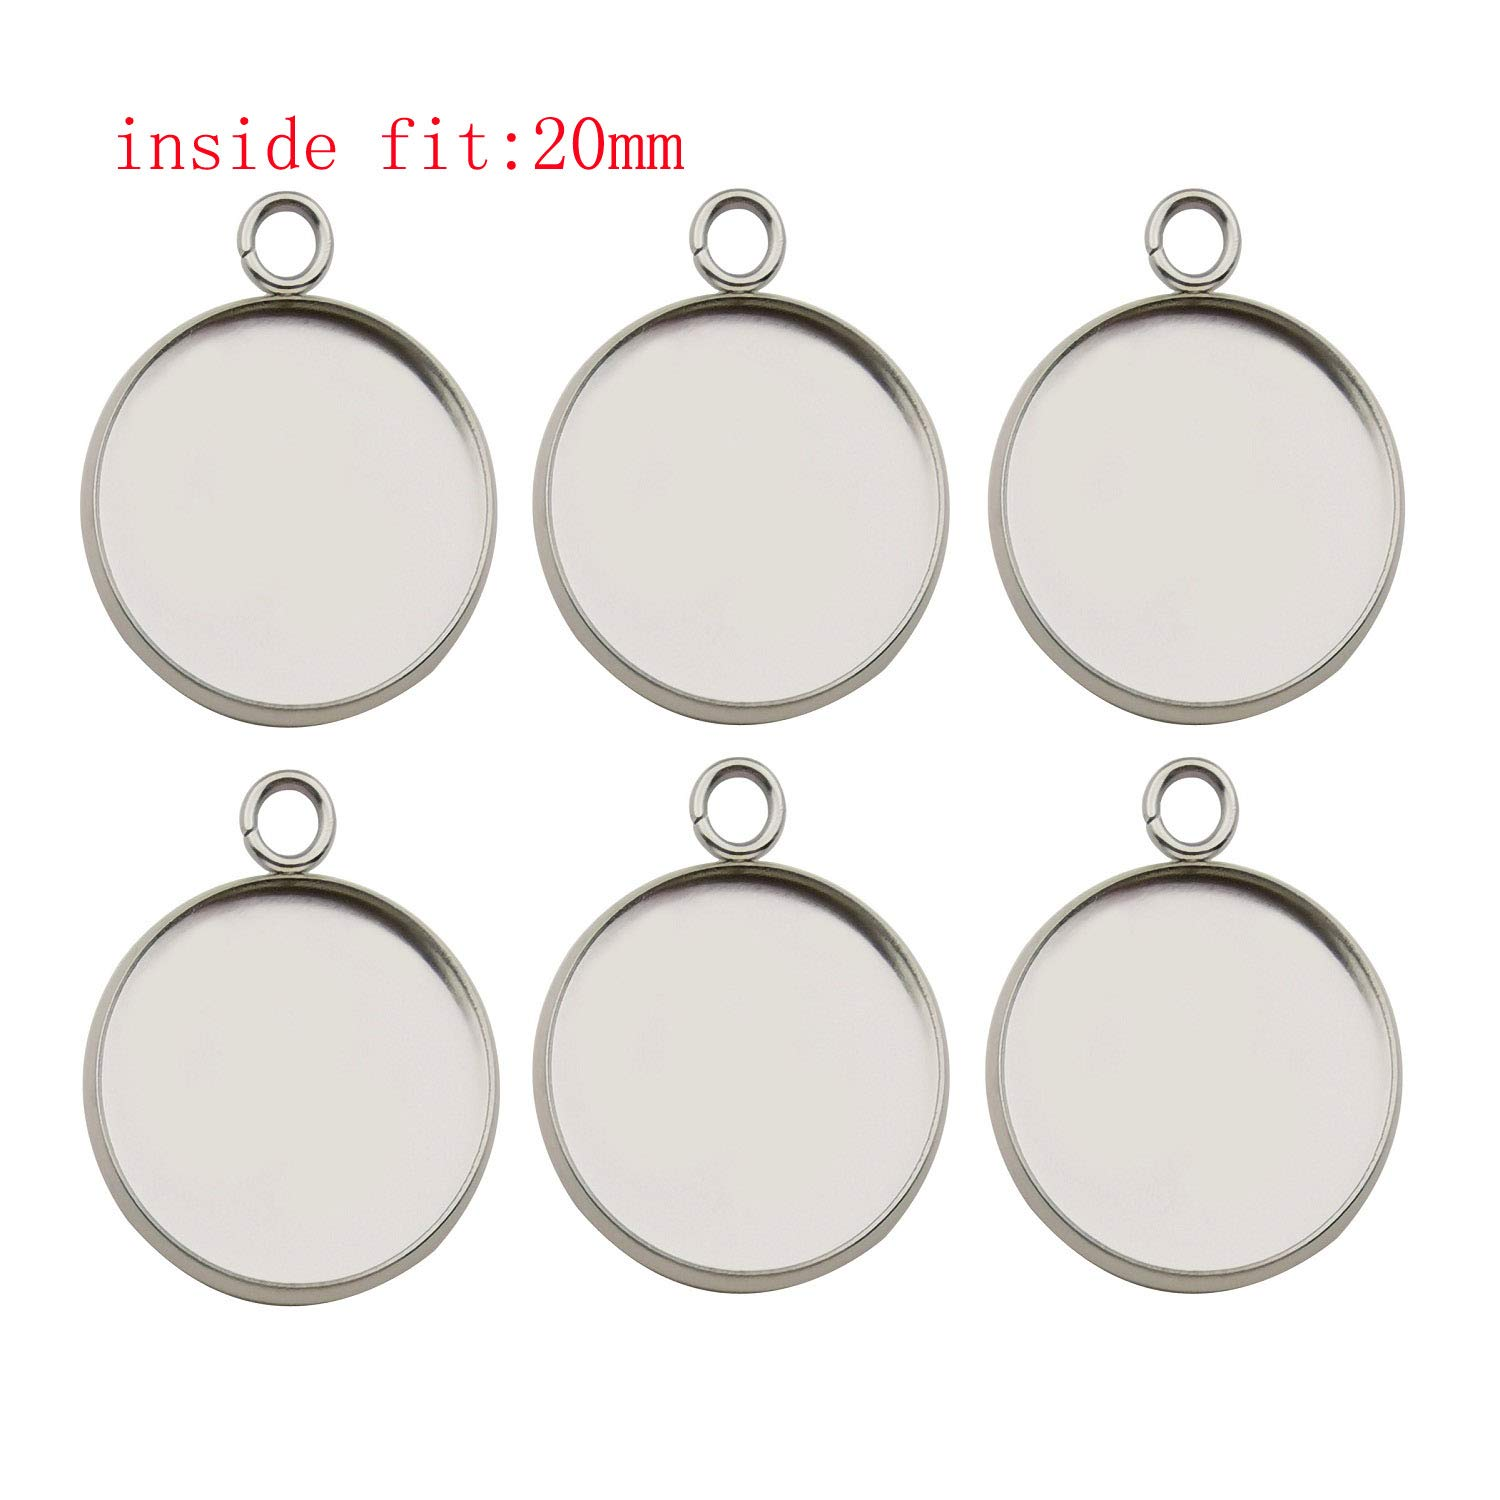 50pcs Fit 12mm Stainless Steel Round Blank Bezel Pendant Trays Base Cabochon Settings Trays Pendant Blanks for Jewelry Making DIY Findings 12mm-50pcs